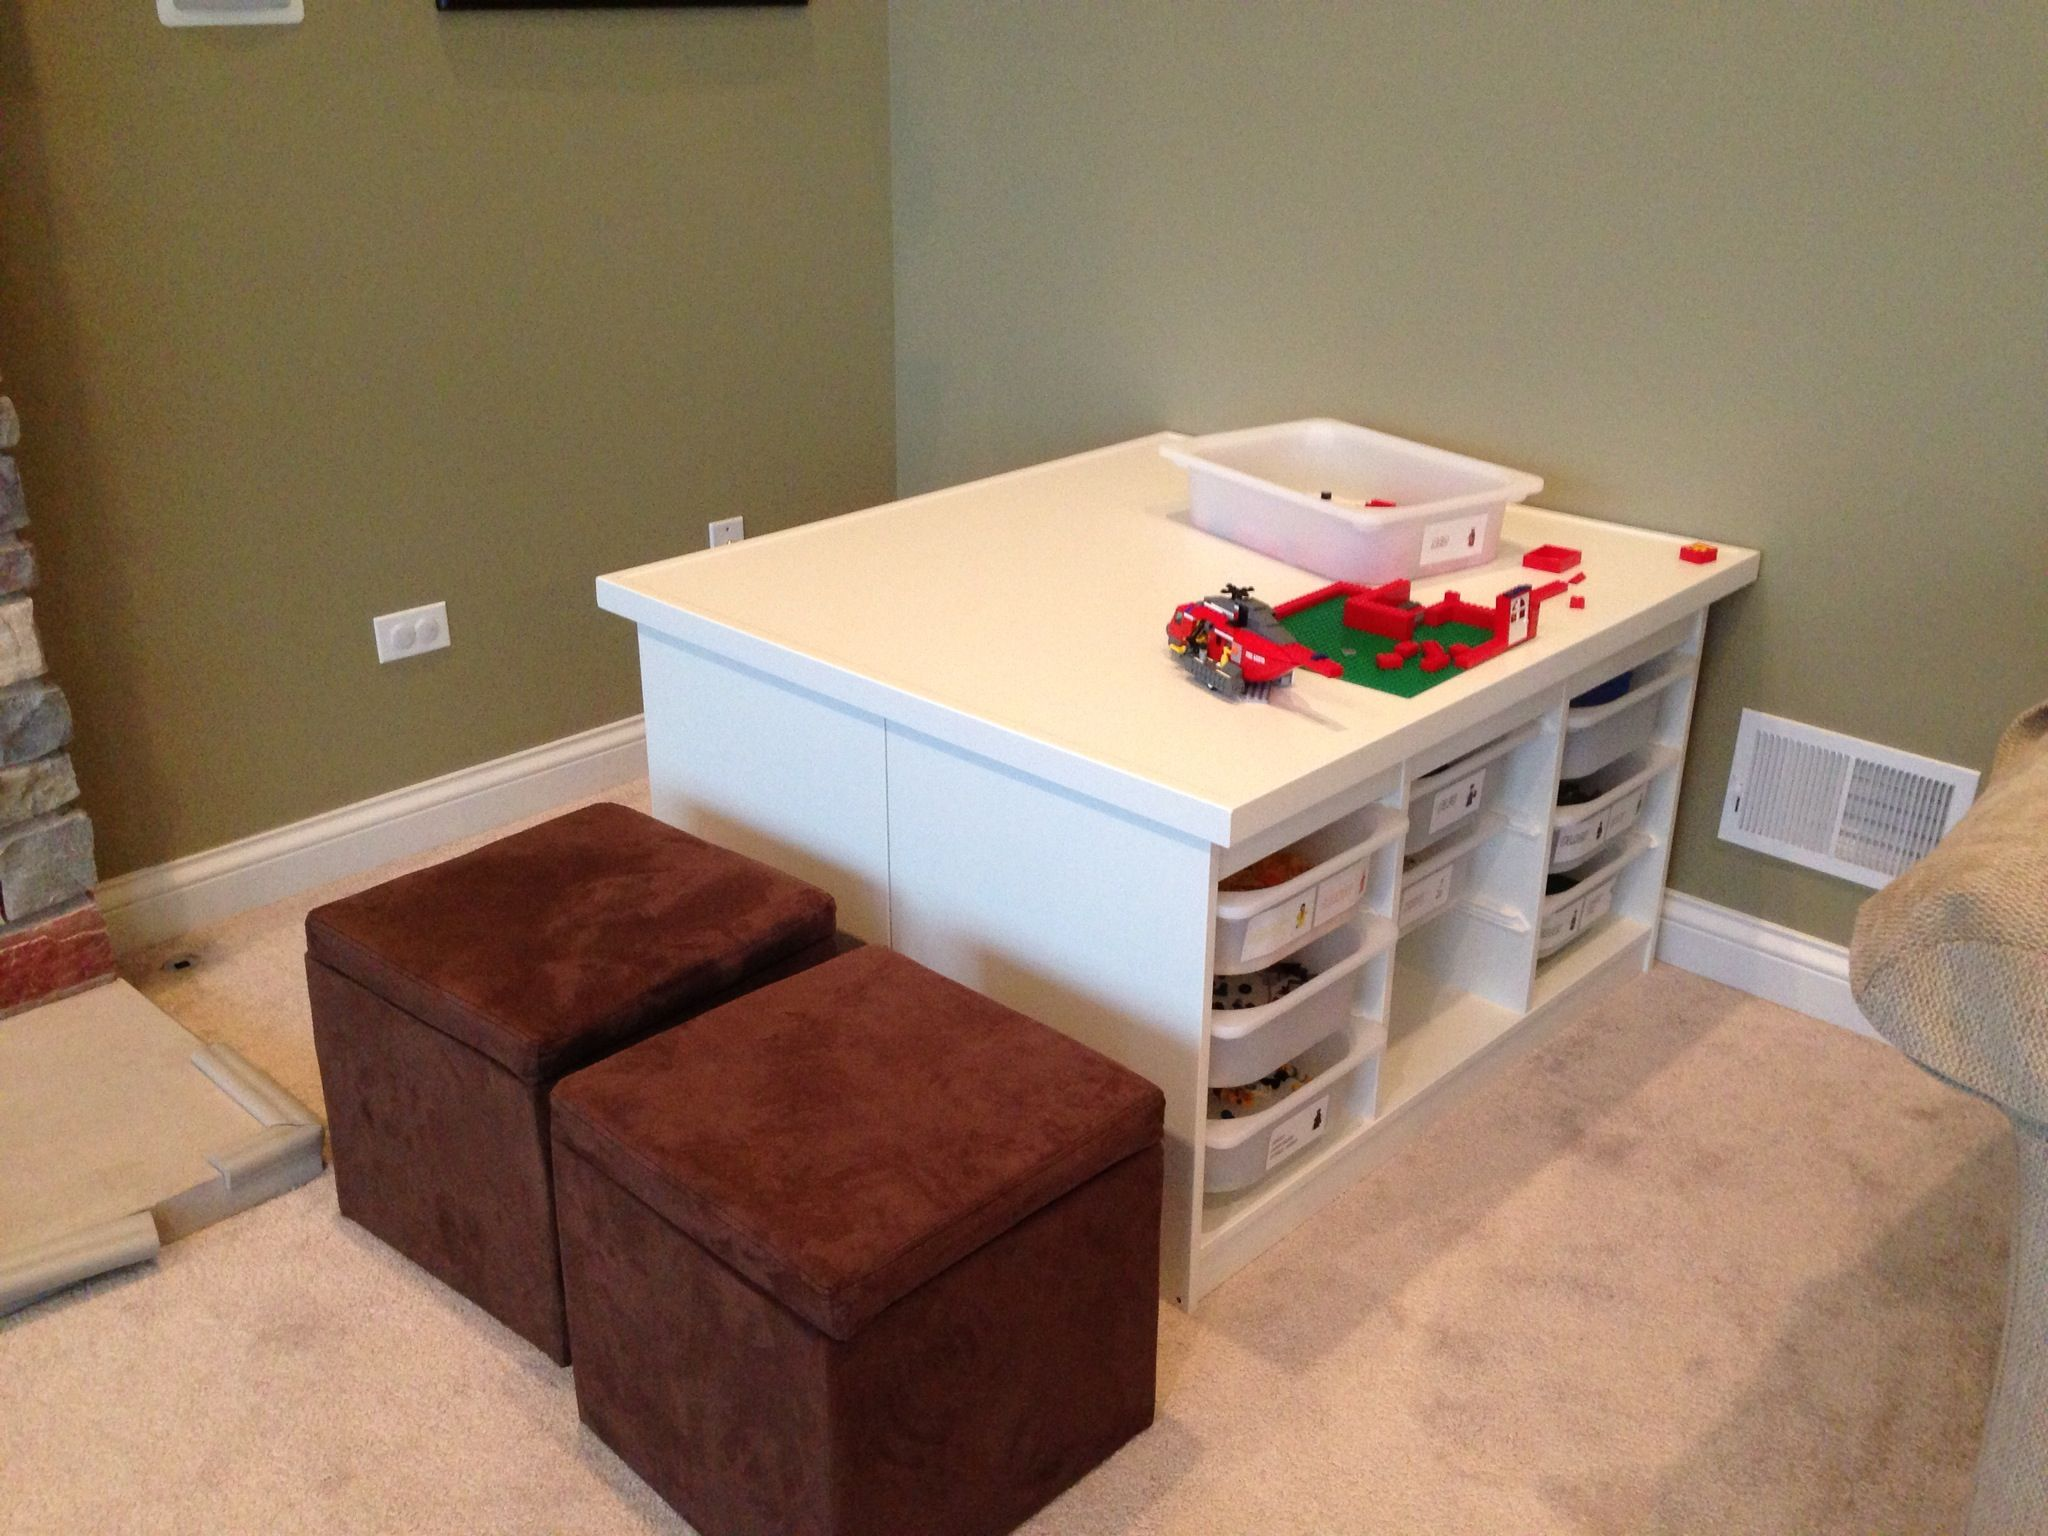 Pin by naomi dasher on ikea hacks products pinterest - Ikea trofast lego table ...